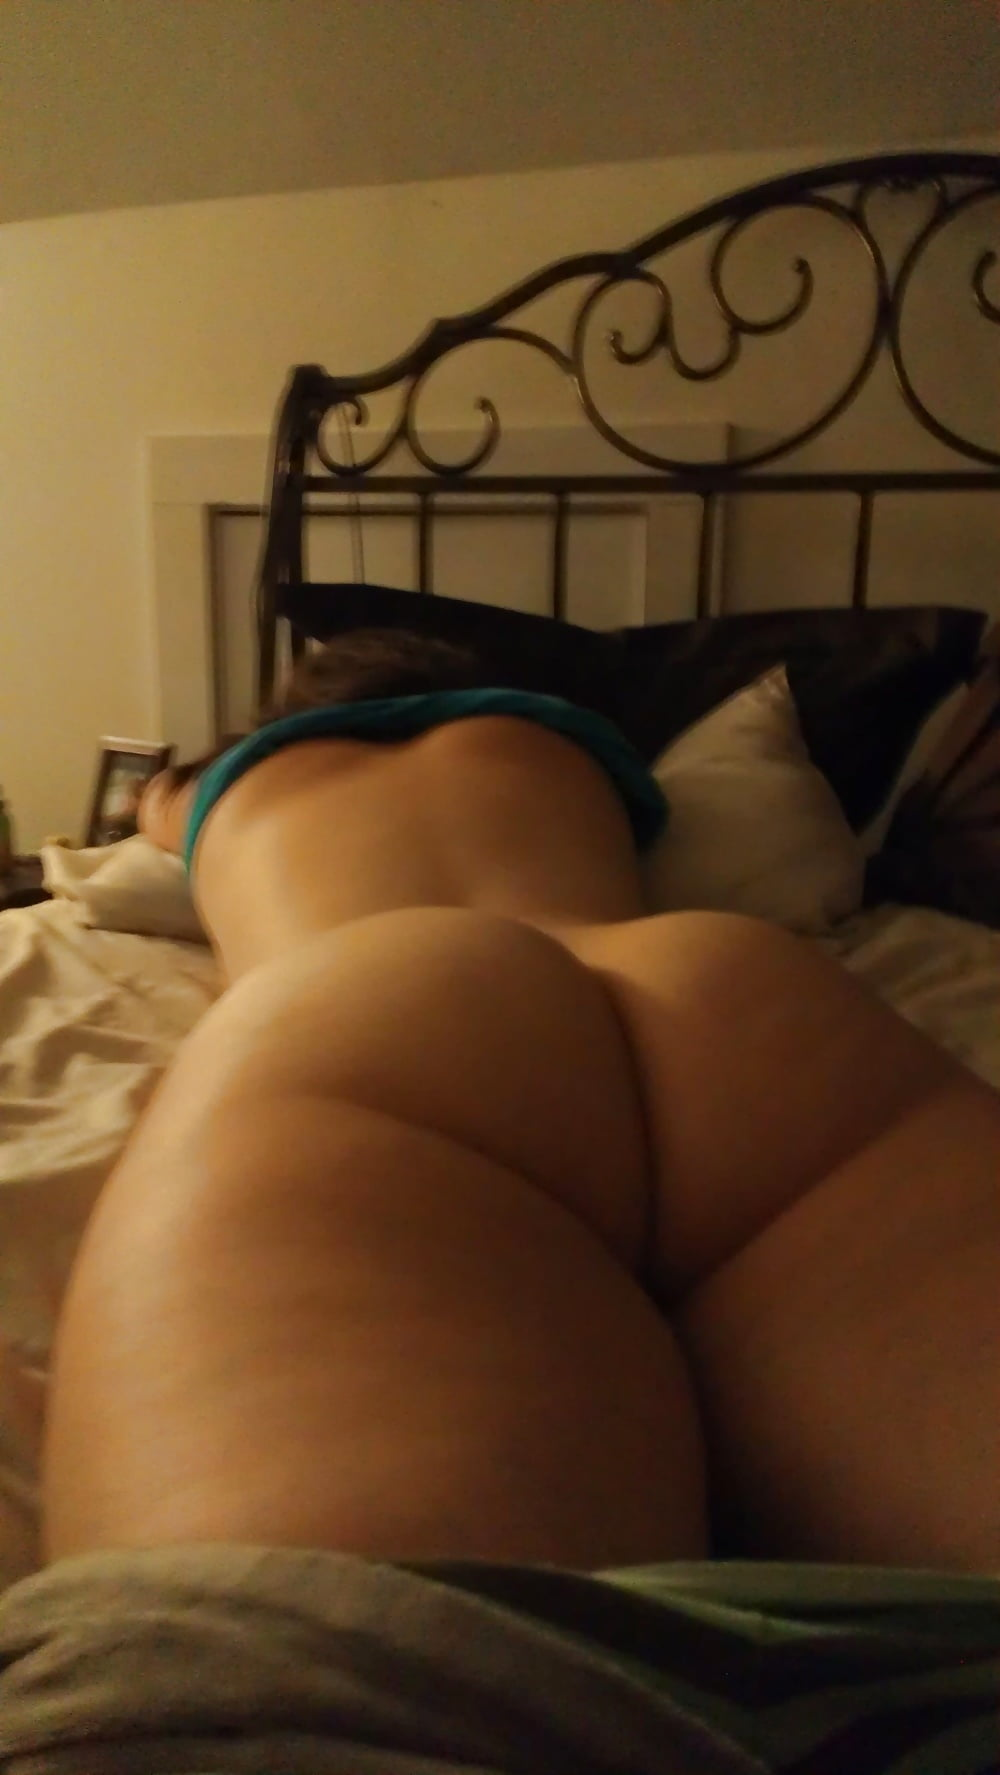 Pic of prone pusy, selina nude pussy pics